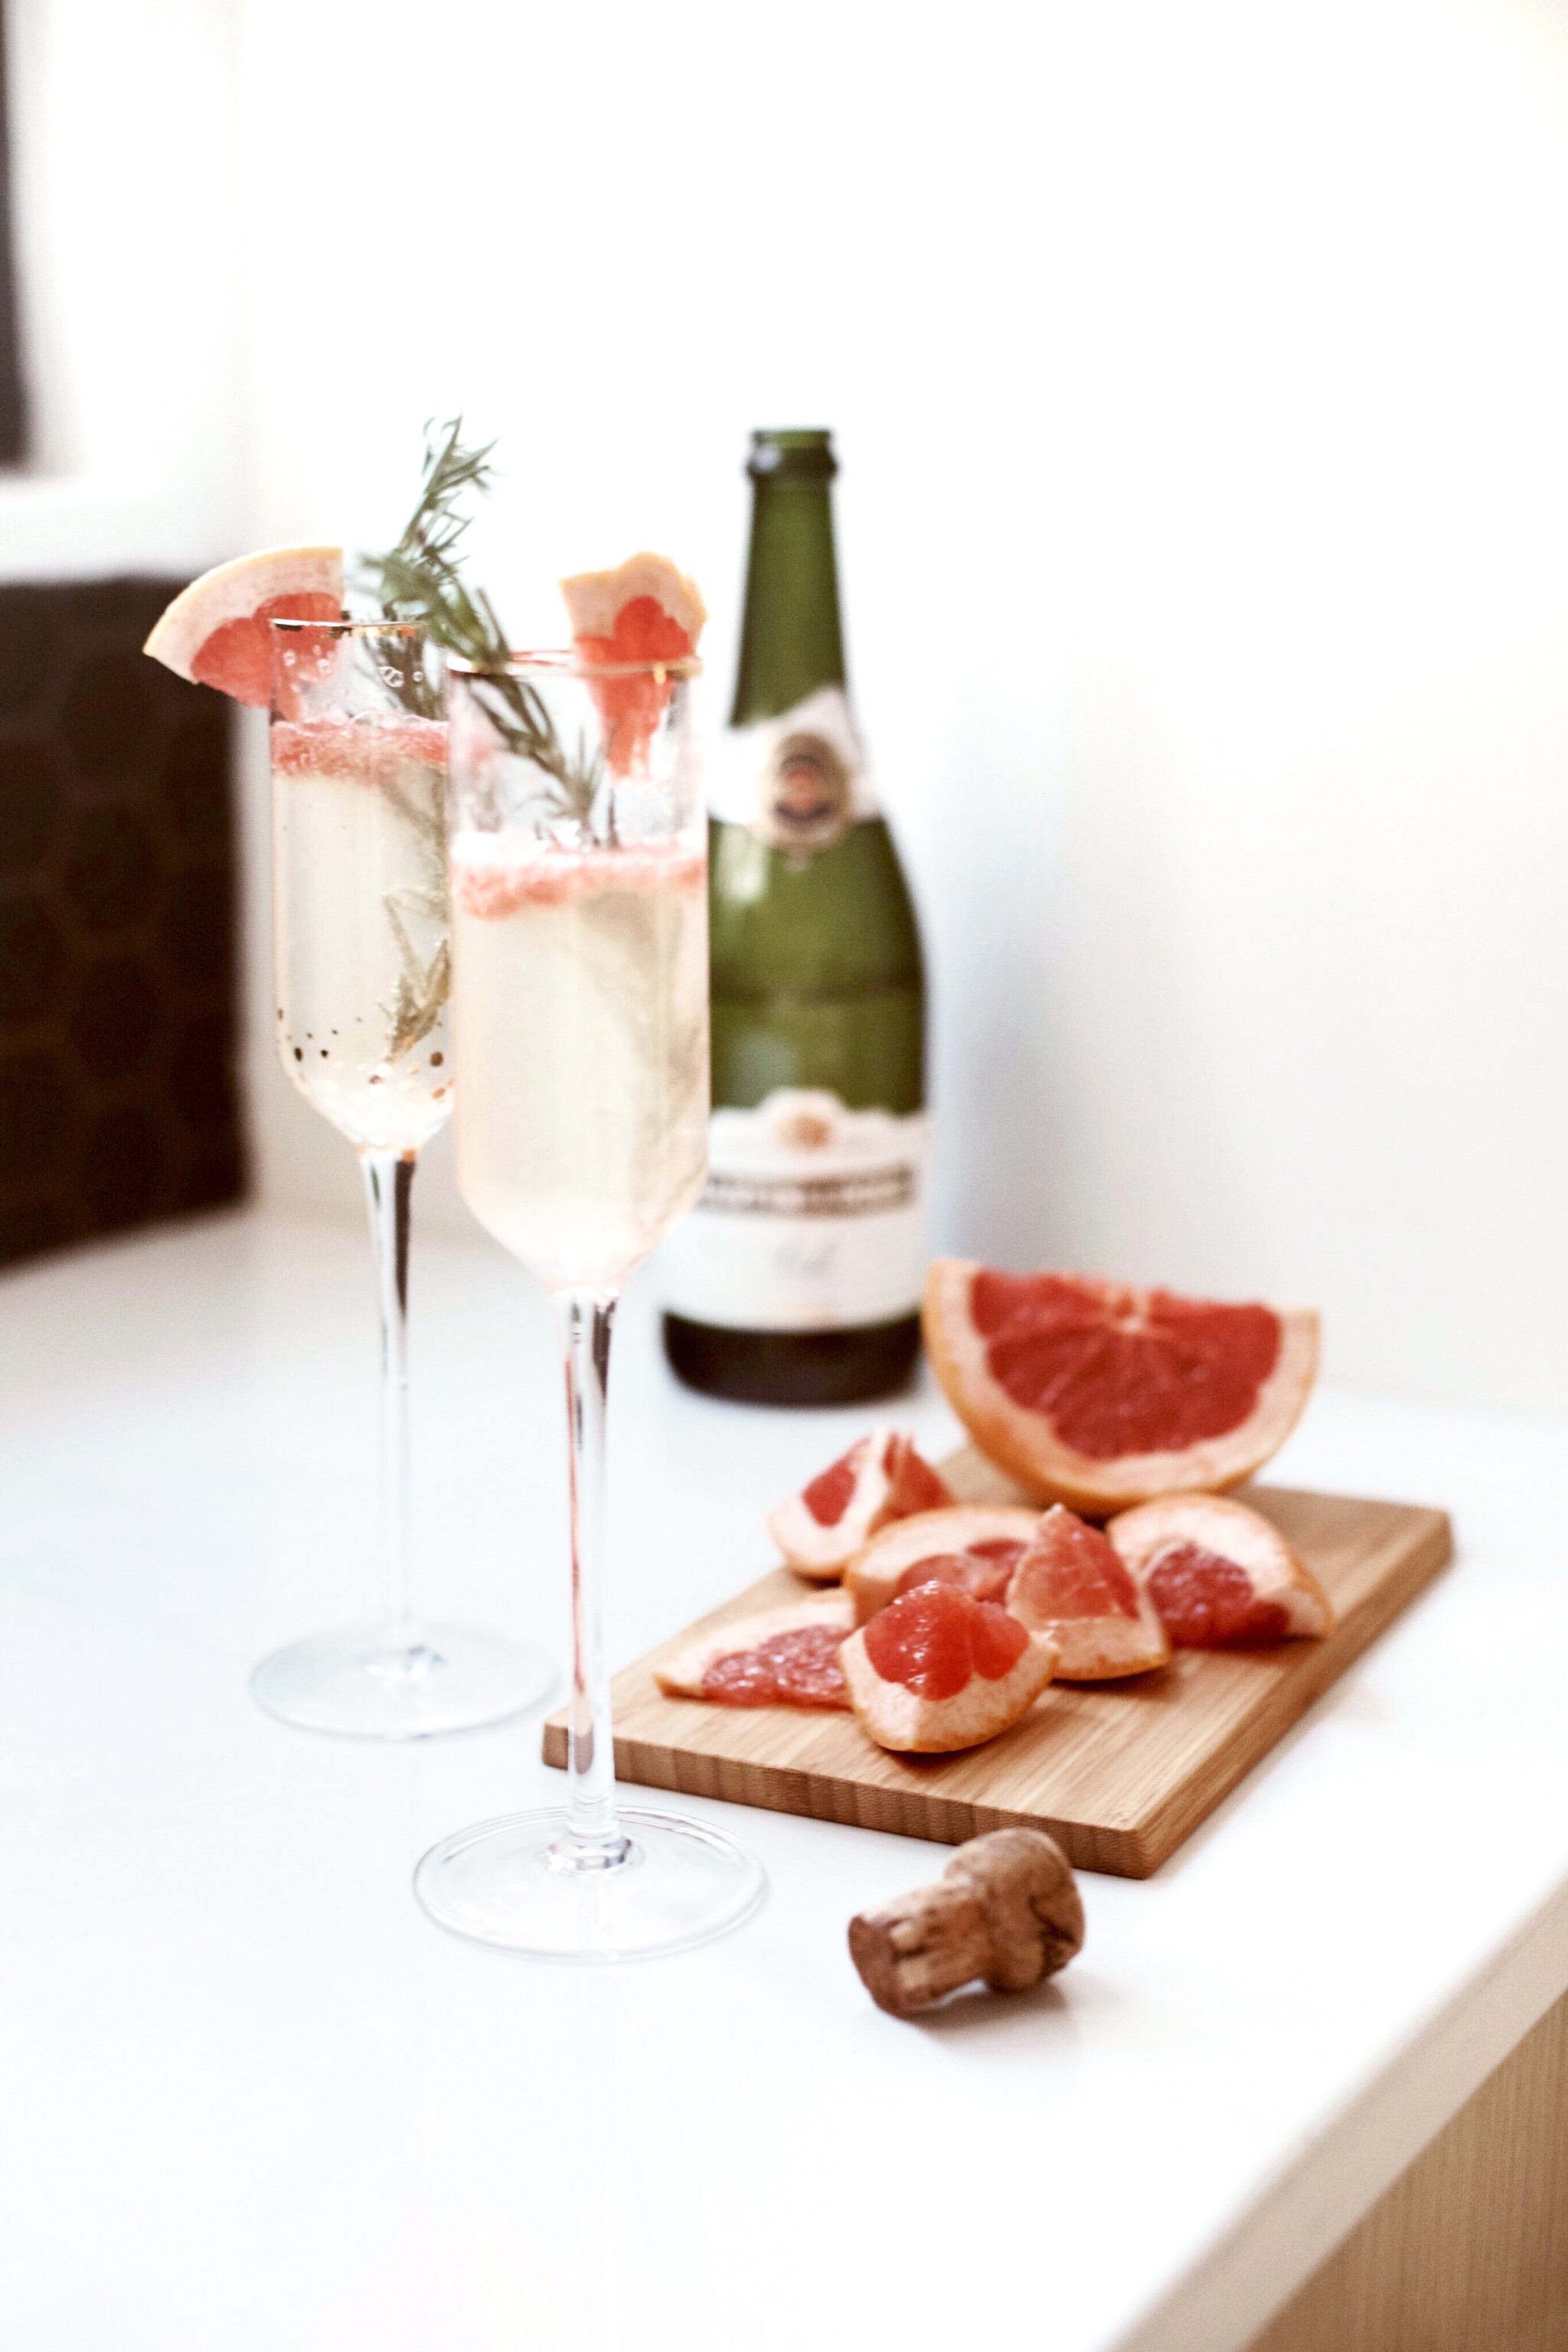 Rosemary Grapefruit Prosecco   |   Gypsy Drinks